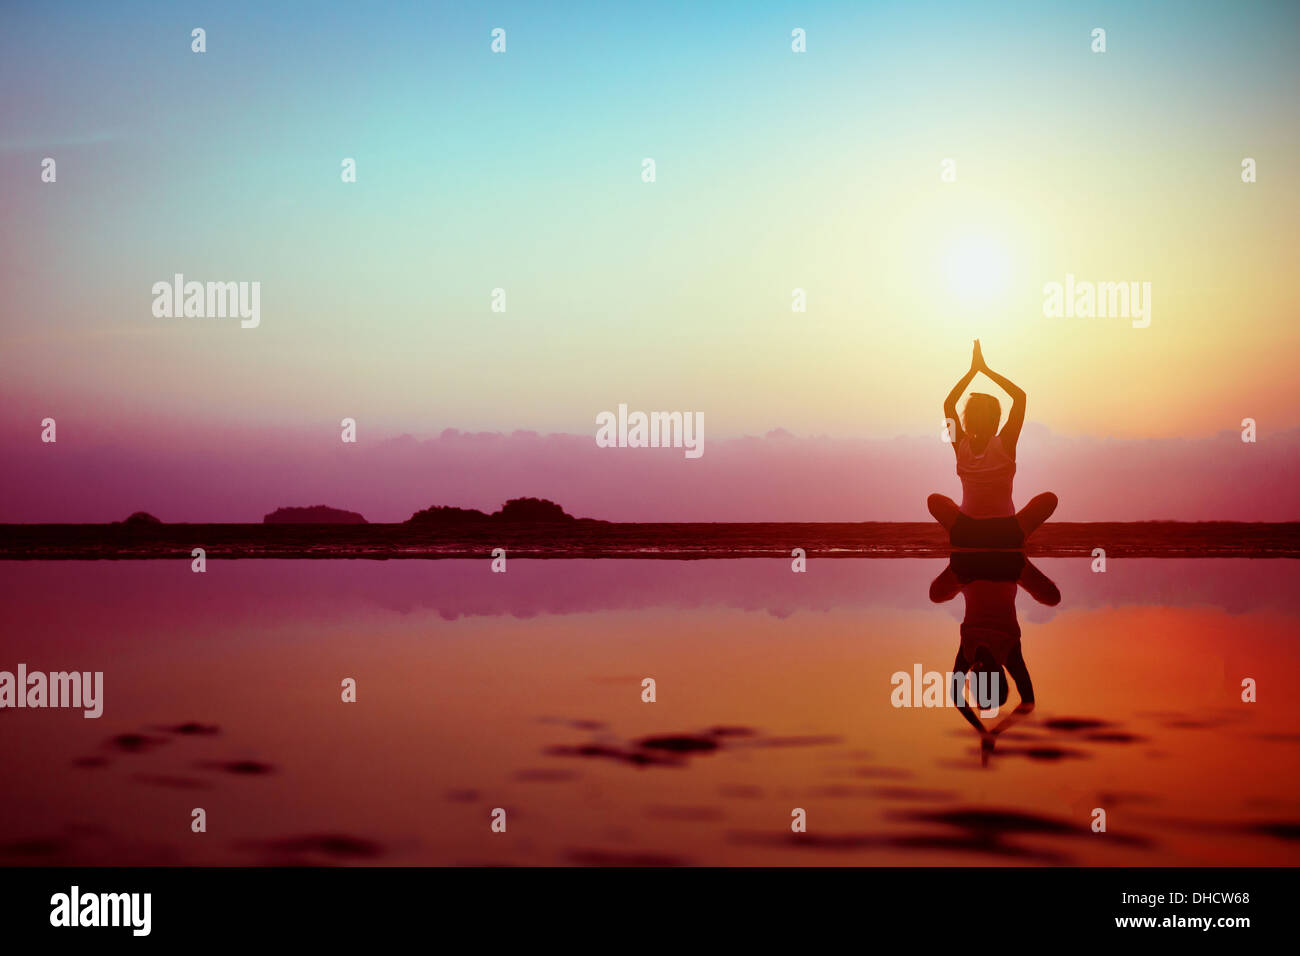 Silhouette of young woman practicing yoga on the beach at sunset - Stock Image